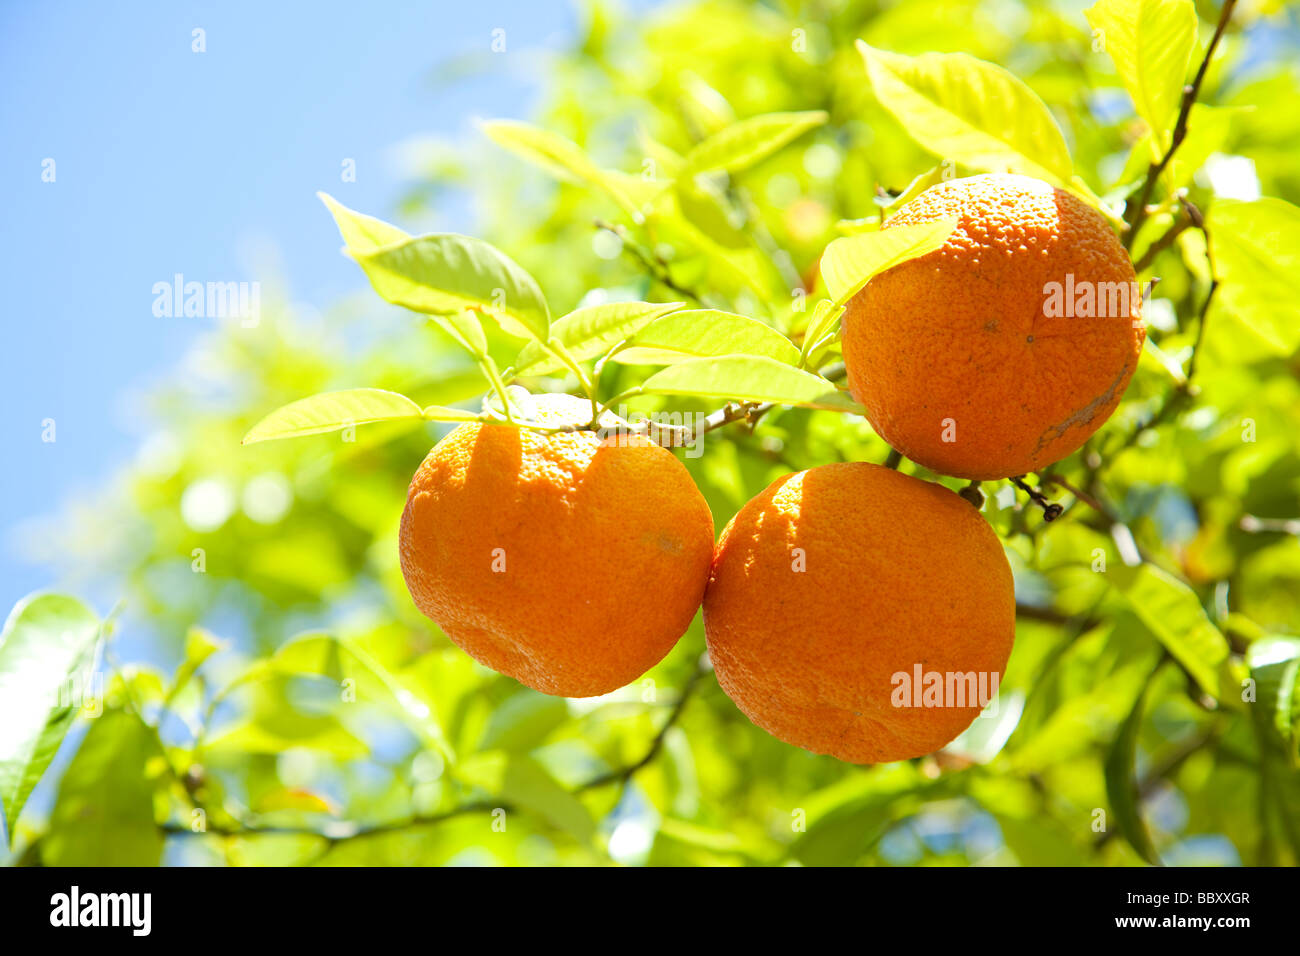 Close-up of organic Spanish Oranges - Stock Image